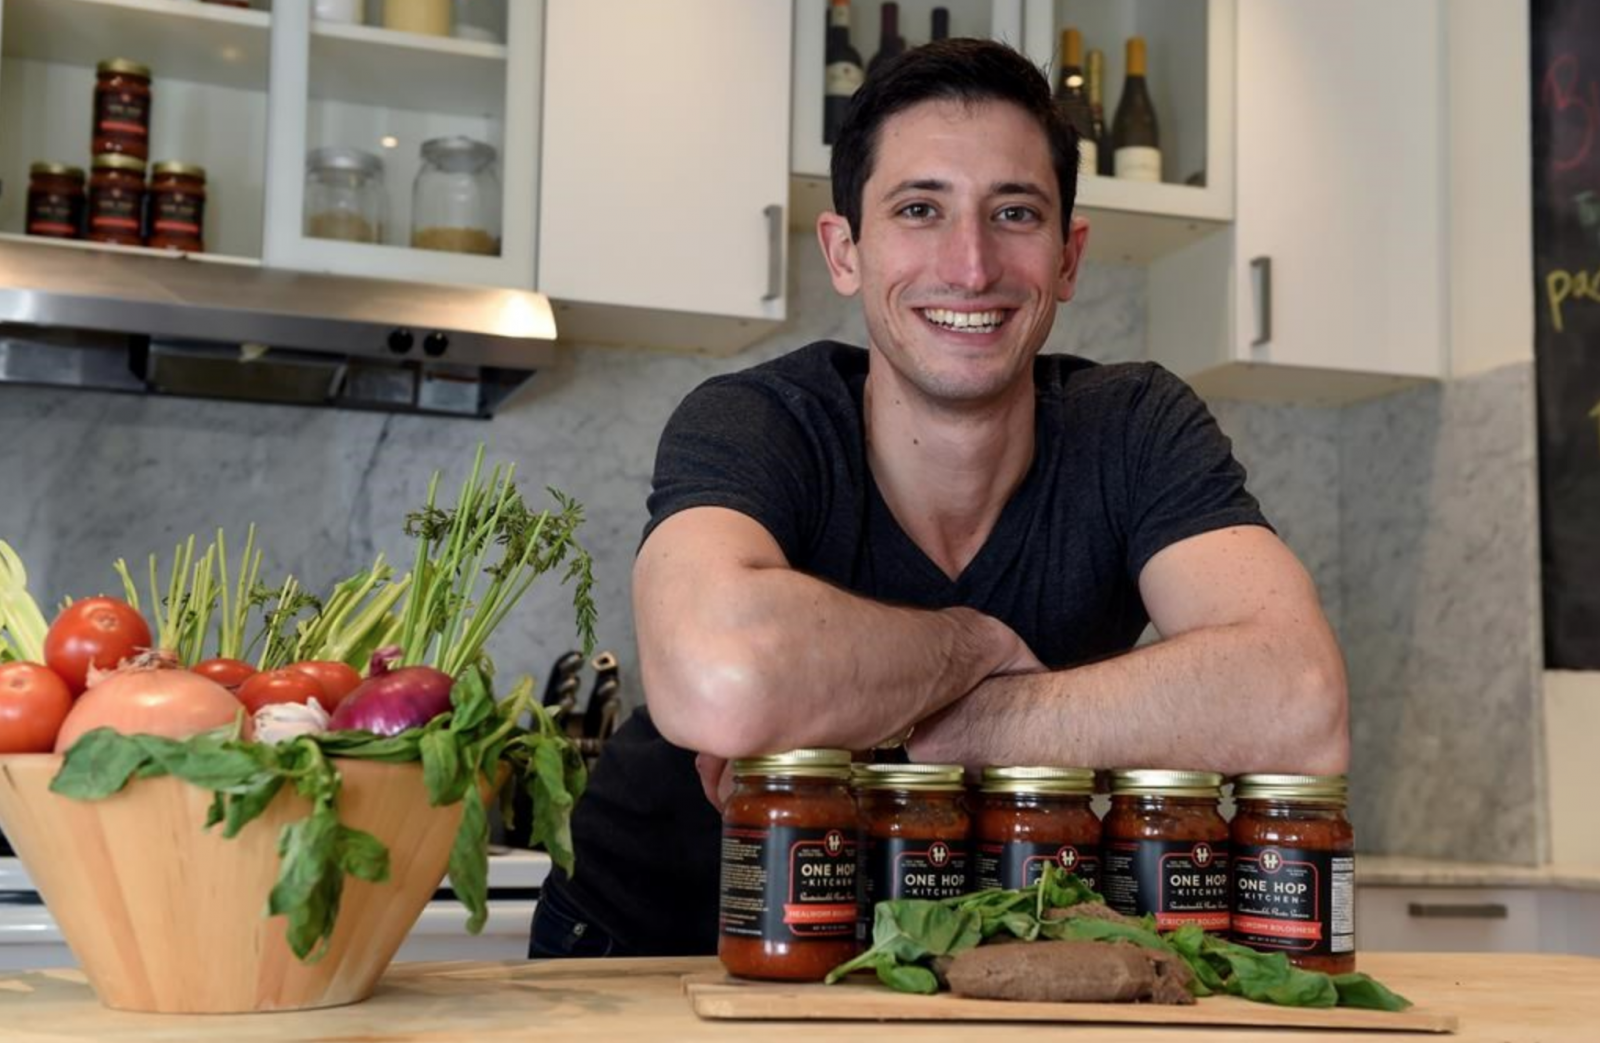 Eli Cadesky, CEO of C-fu Foods in Toronto, shows off his jars insect-based pasta sauce. File photo by Canadian Press